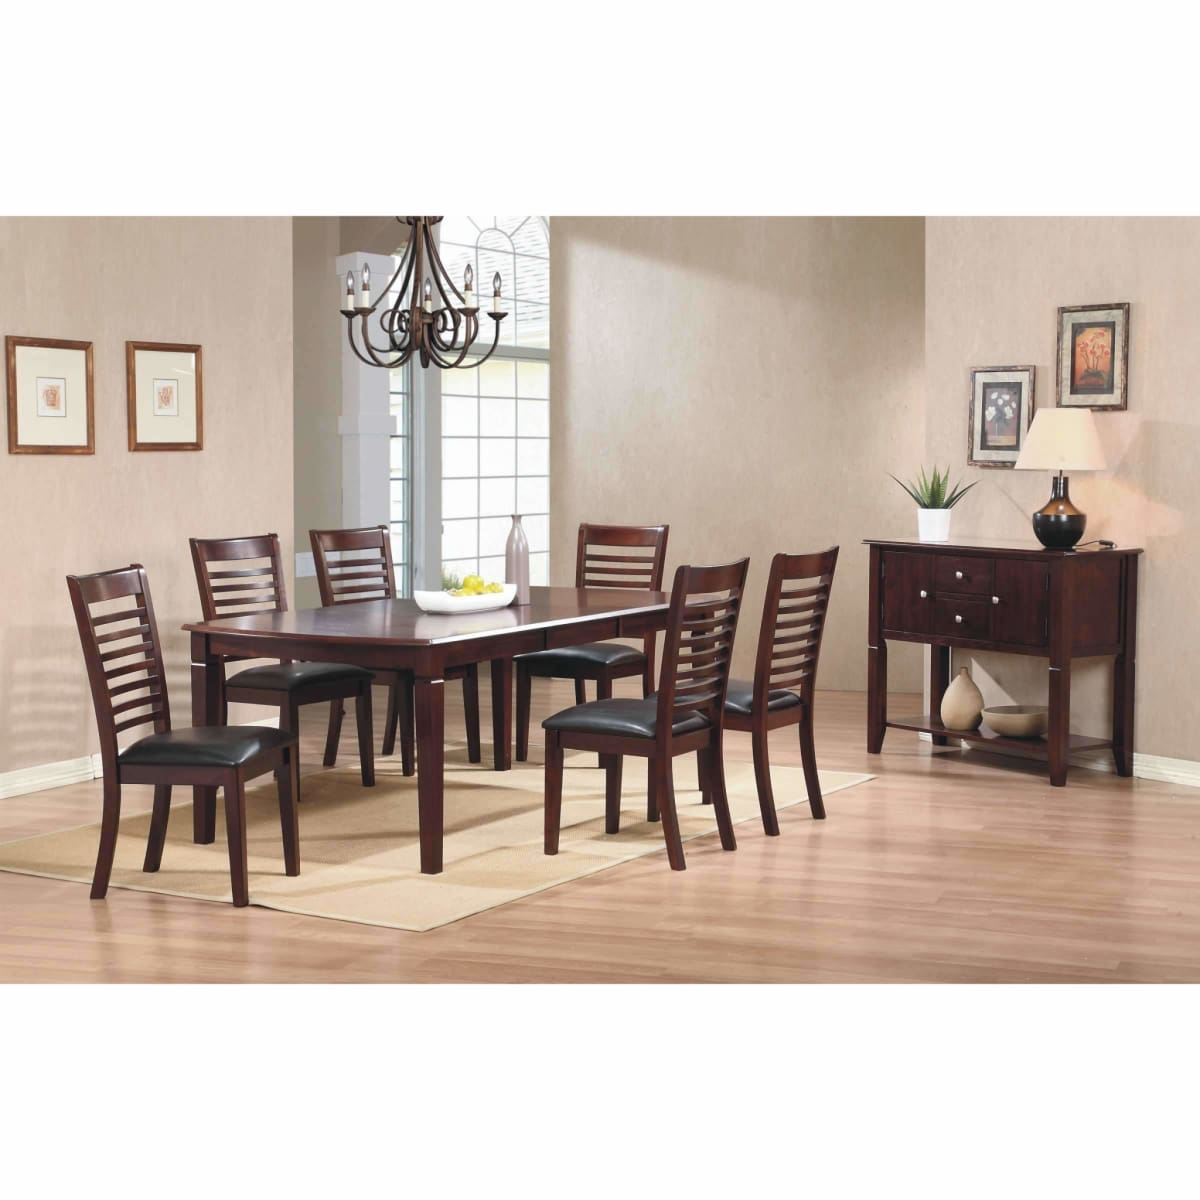 Santa Fe Leg Table - DININGCOUNTERHEIGHT